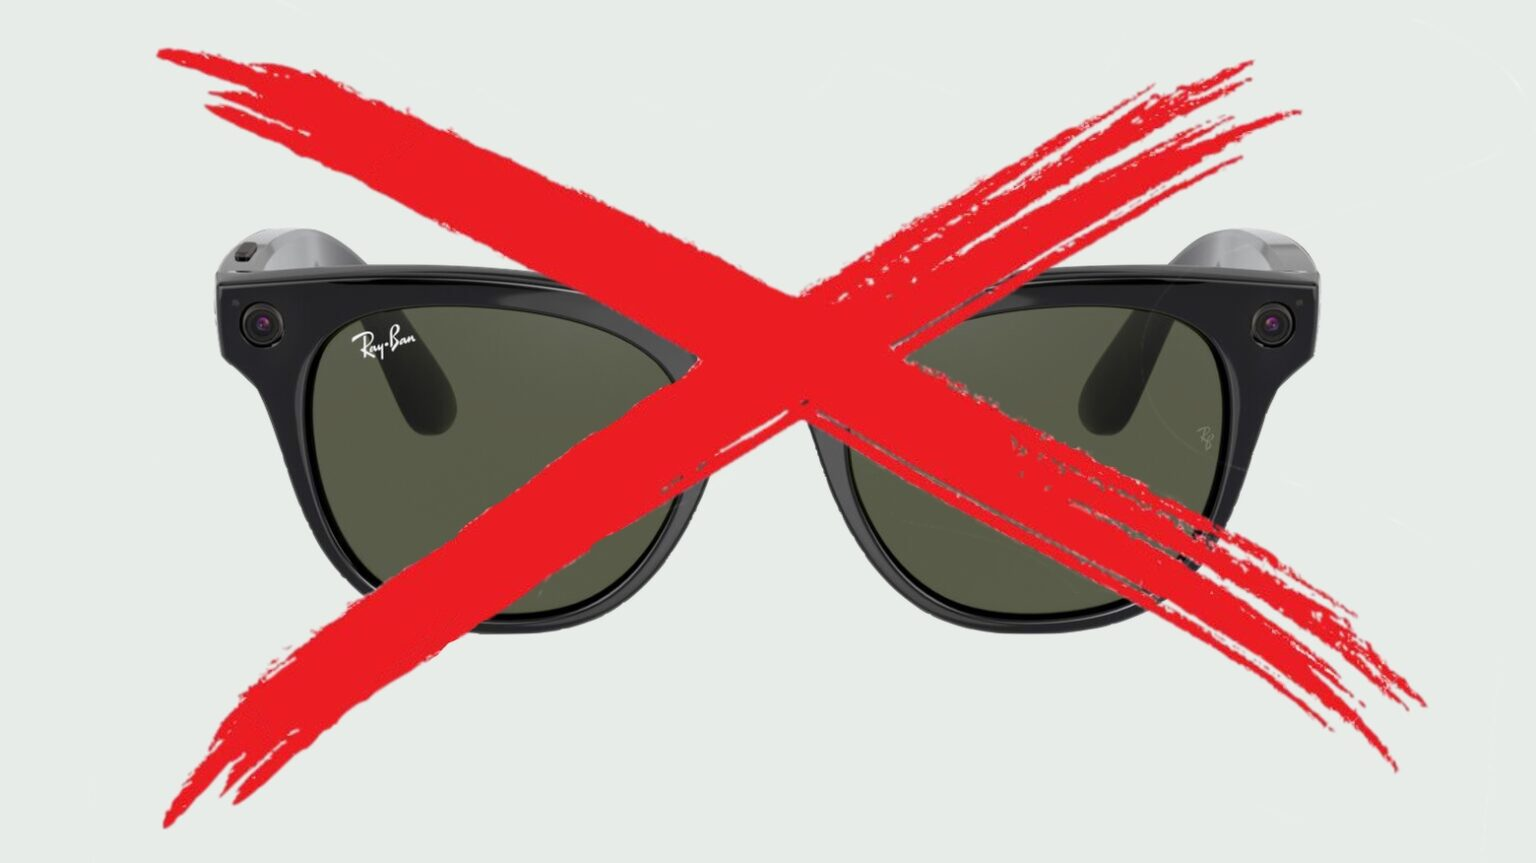 See here, Apple: Leave cameras out of your smartglasses